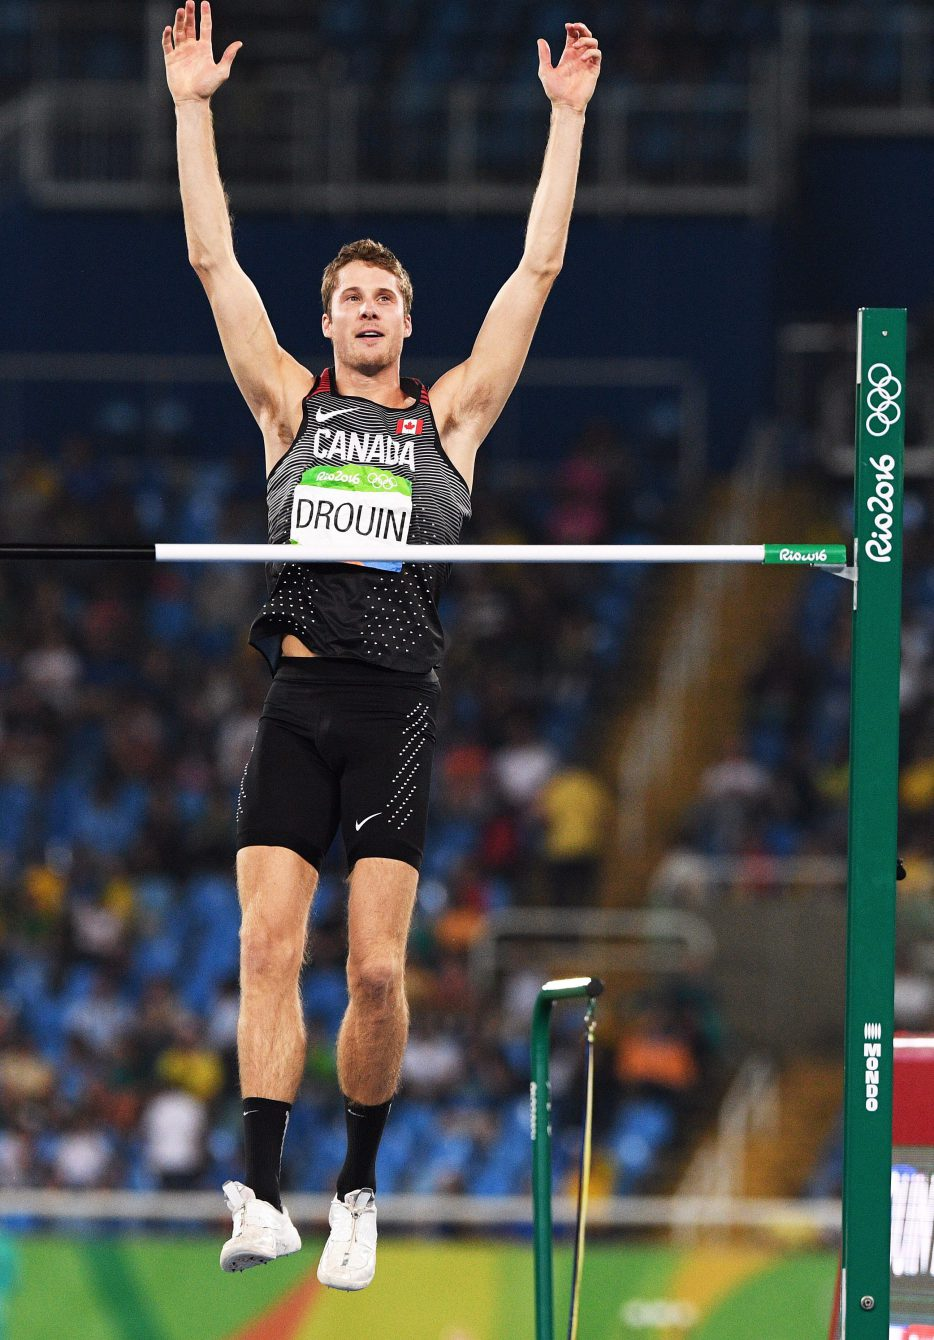 Canada's Derek Drouin celebrates after clearing his fifth jump during the men's high jump final at the 2016 Summer Olympics in Rio de Janeiro, Brazil, Tuesday, August 16, 2016. THE CANADIAN PRESS/Sean Kilpatrick